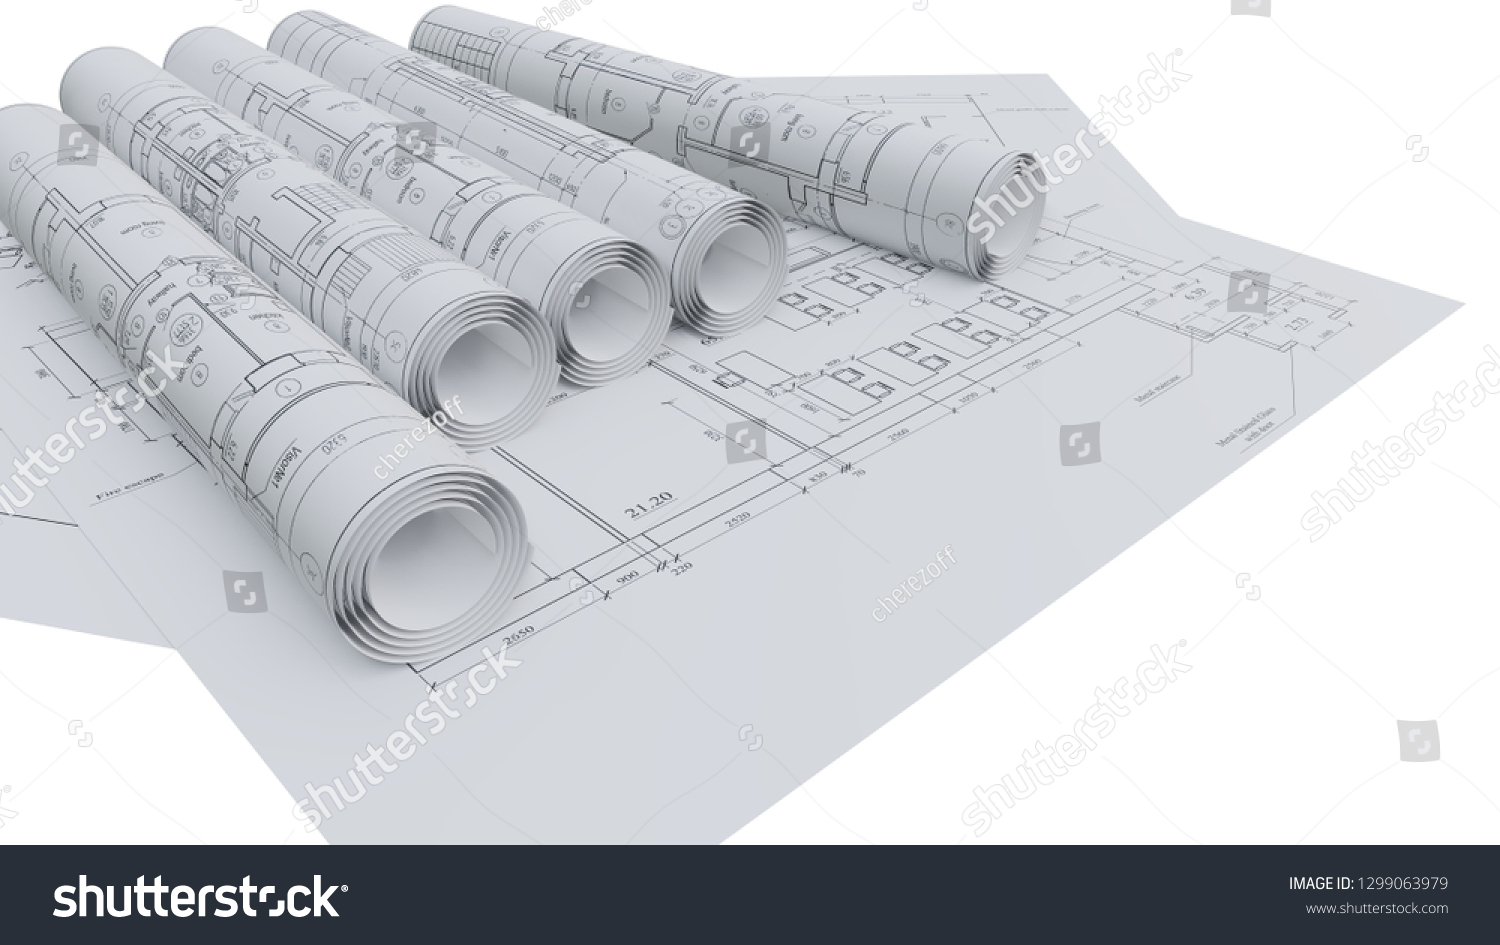 Architectural Drawings Flat Rolled 3 D Rendering Stock